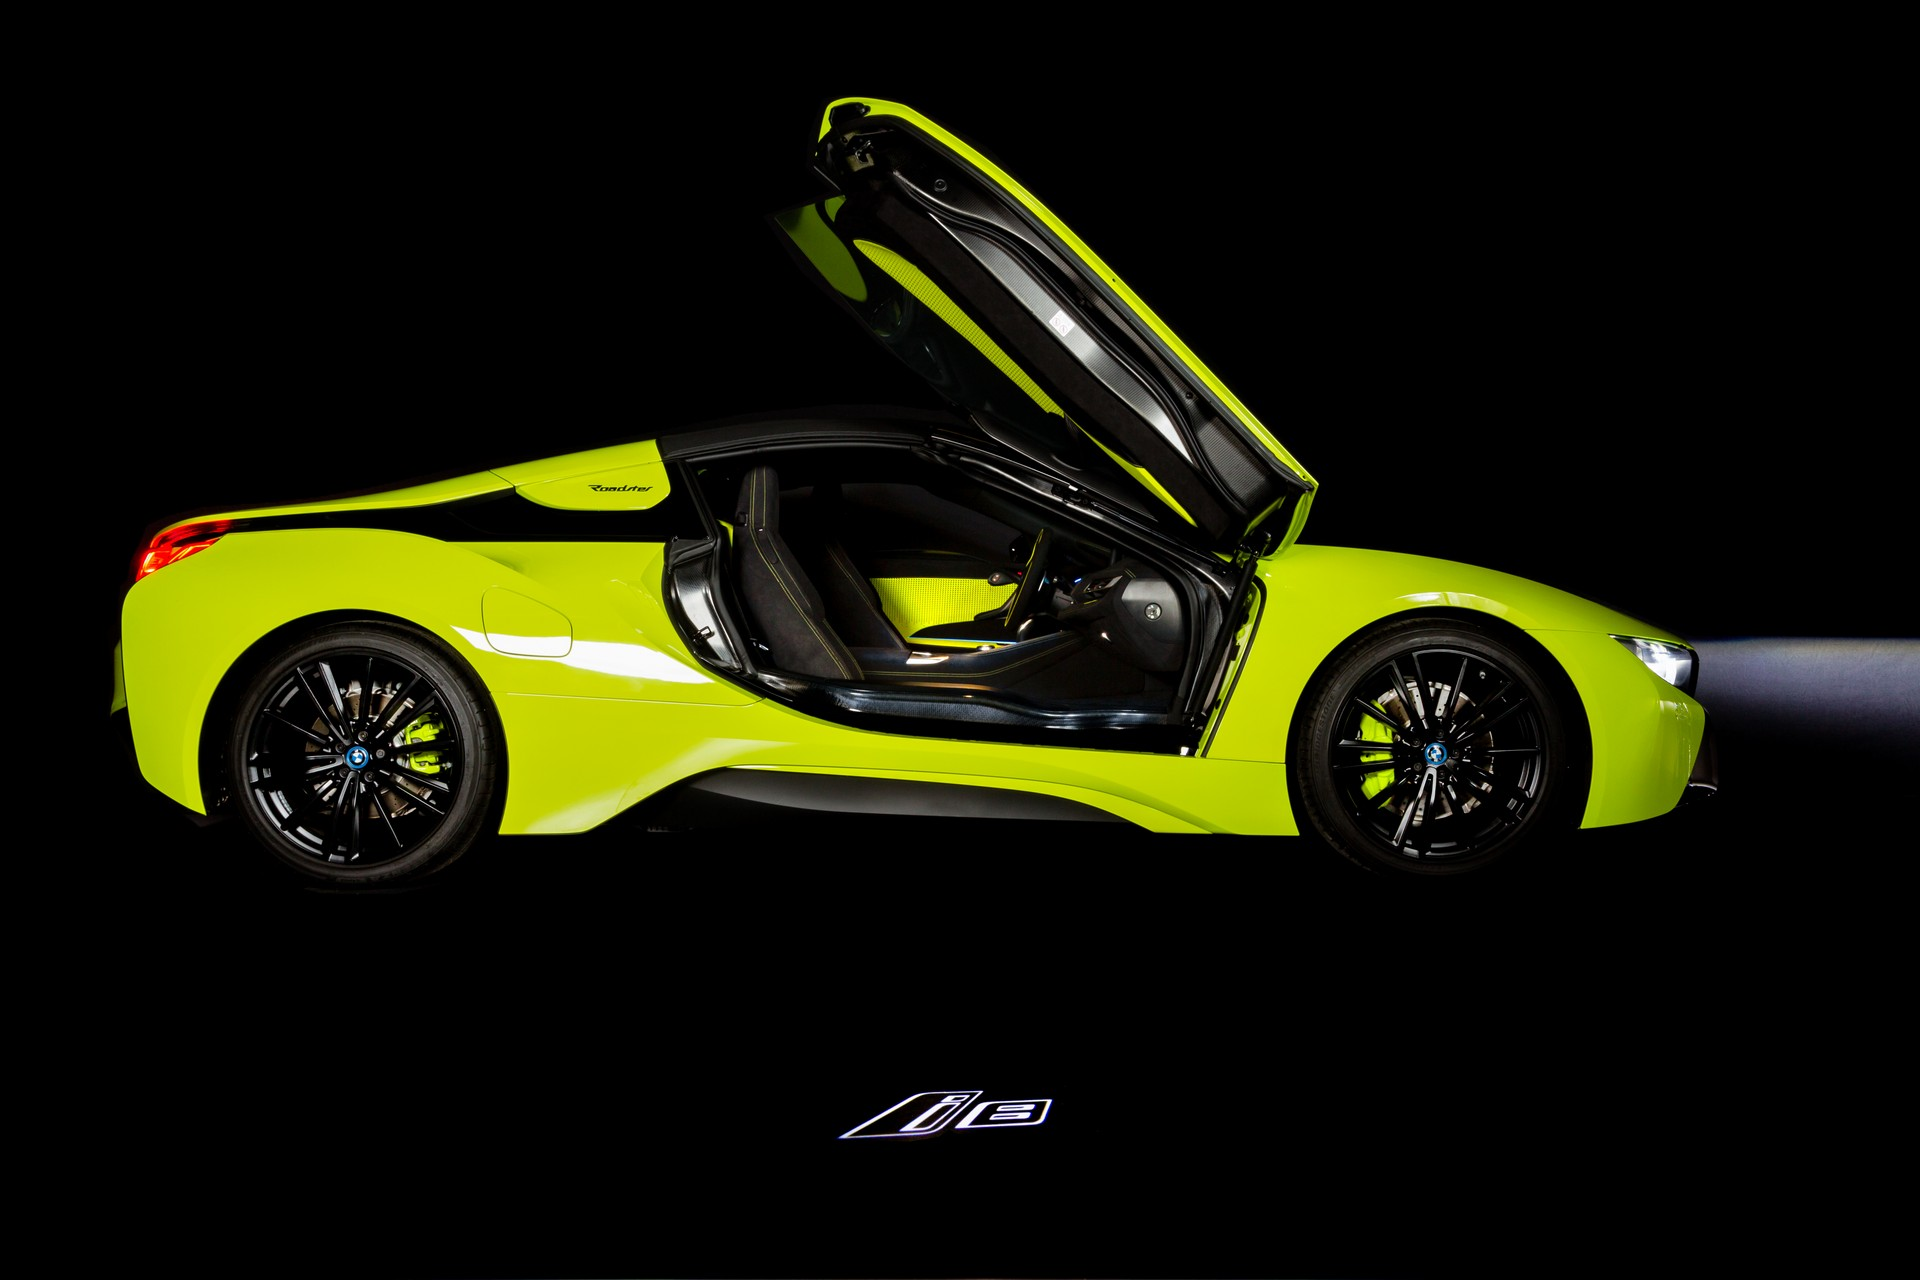 BMW-i8-Roadster-LimeLight-Edition-2